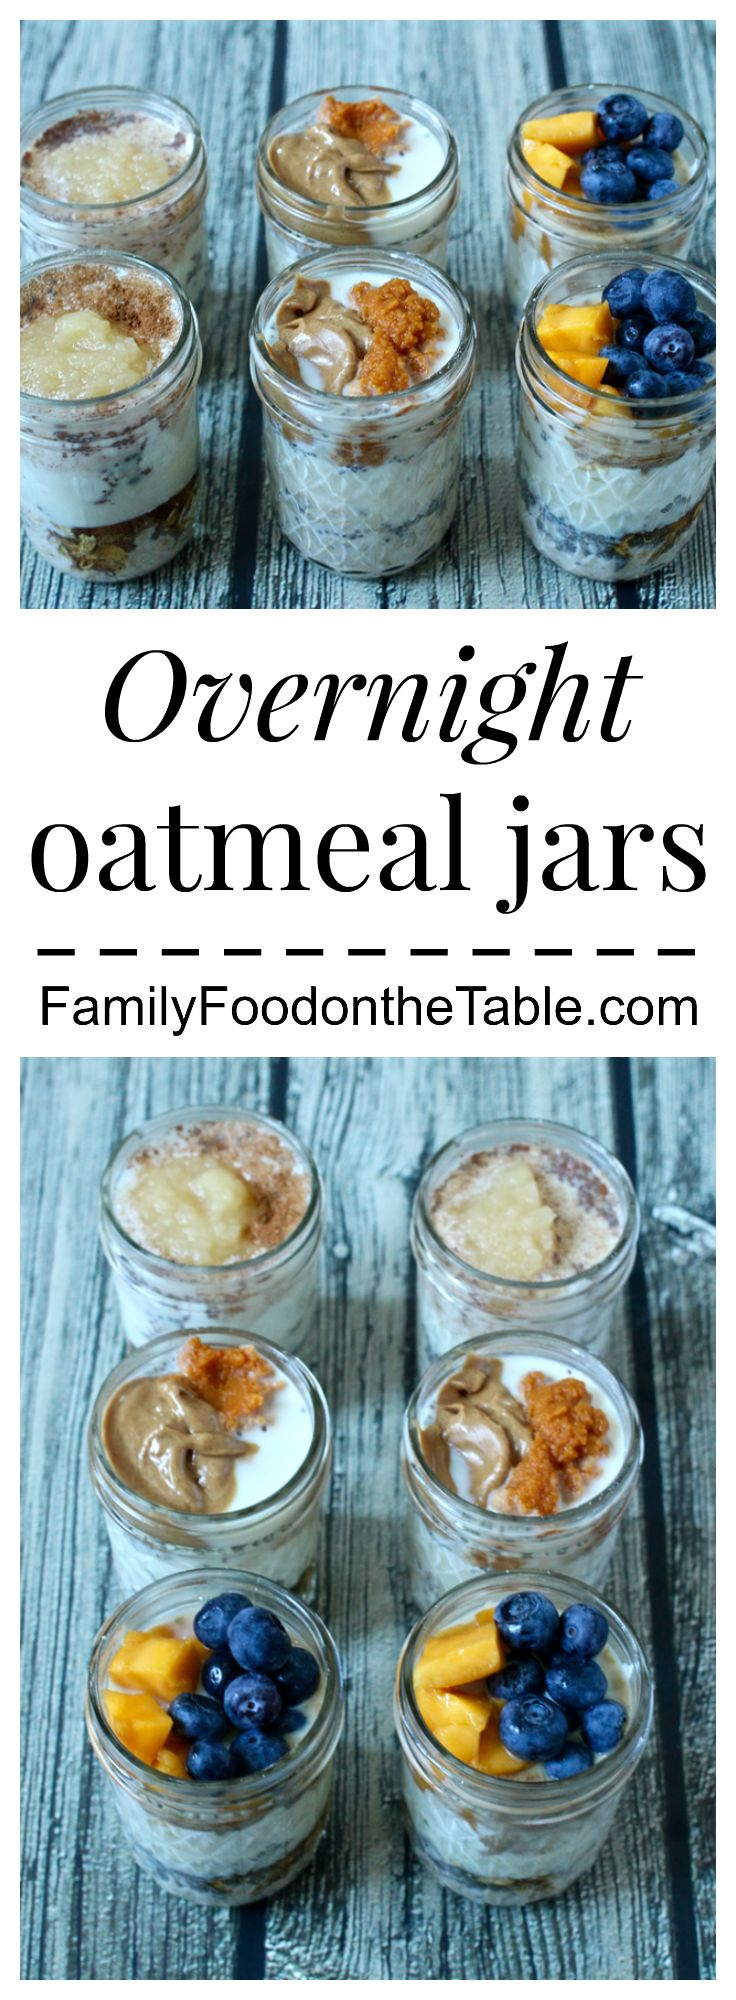 Overnight oatmeal jars - our 3 favorite flavors plus lots more ideas! | Family Food on the Table